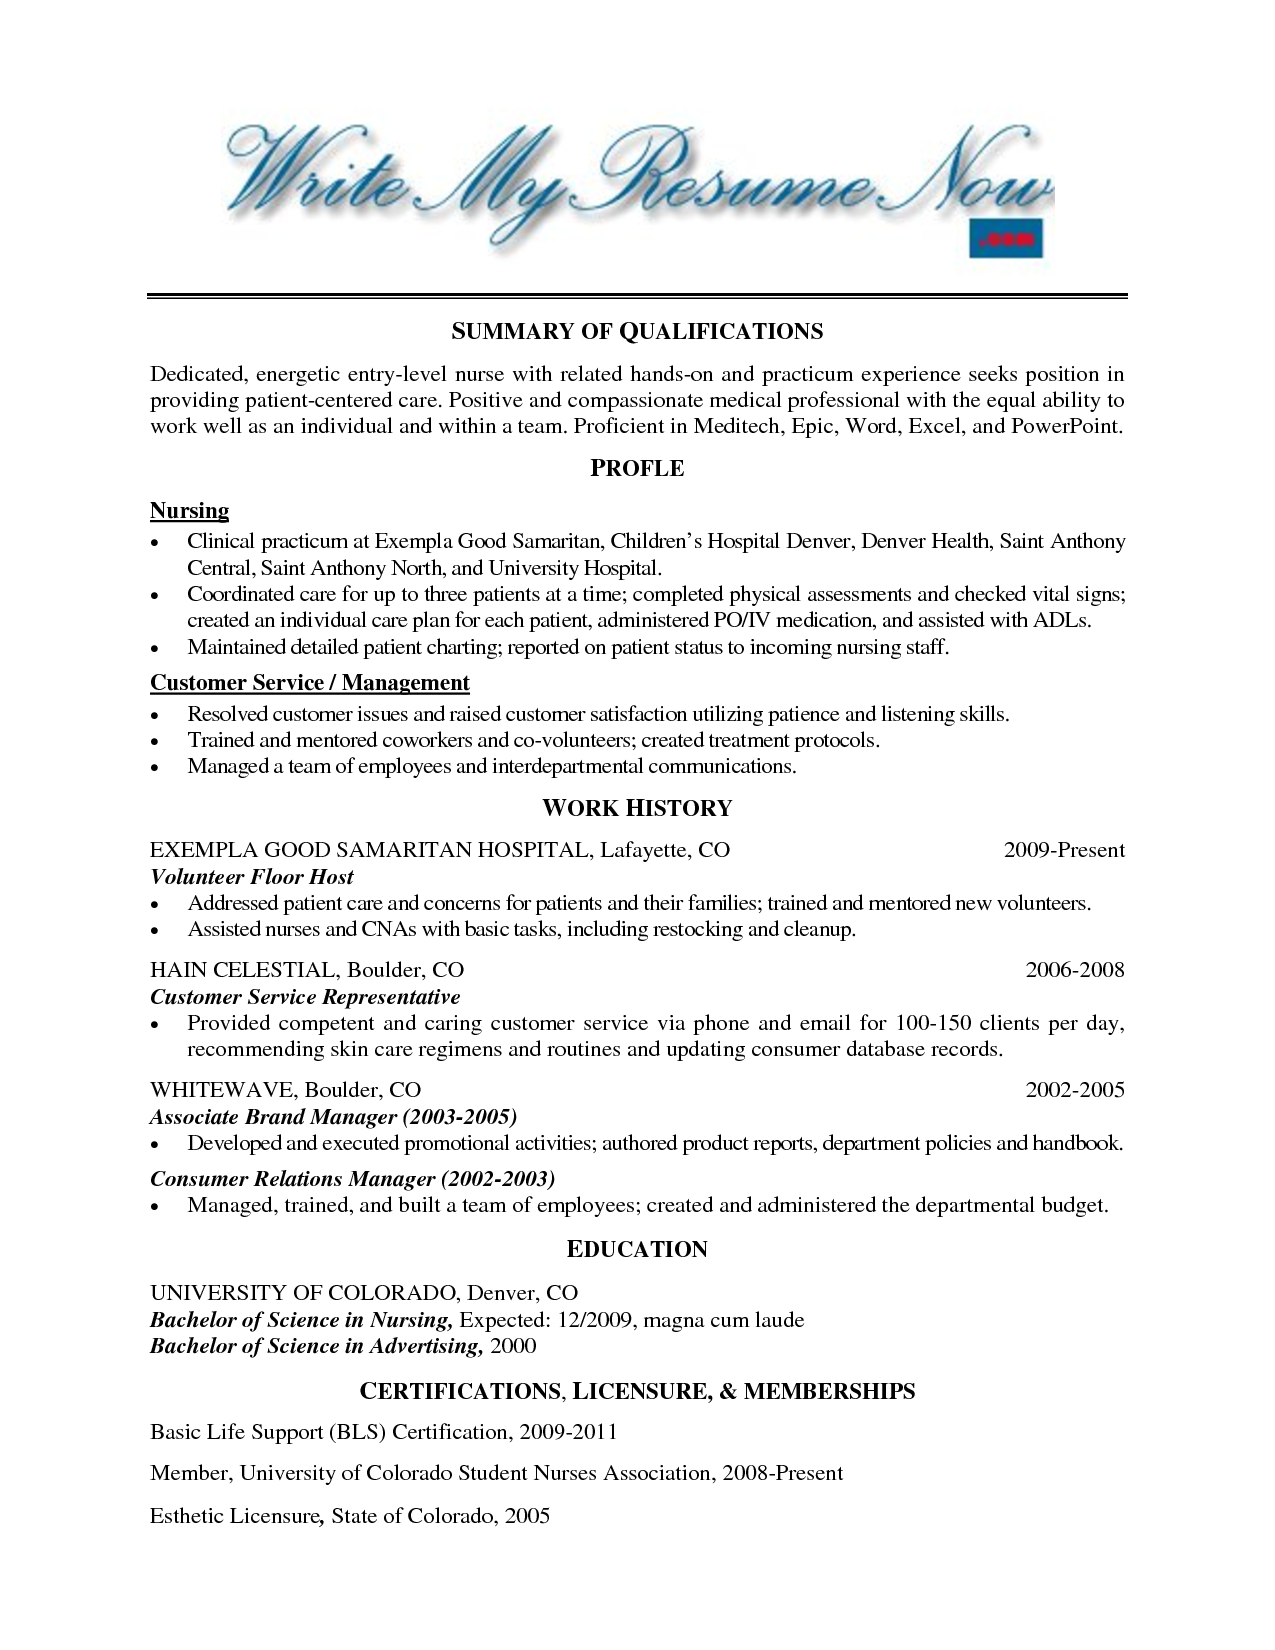 Medical Student Resume Hospital Volunteer Resume Example  Httpwwwresumecareer